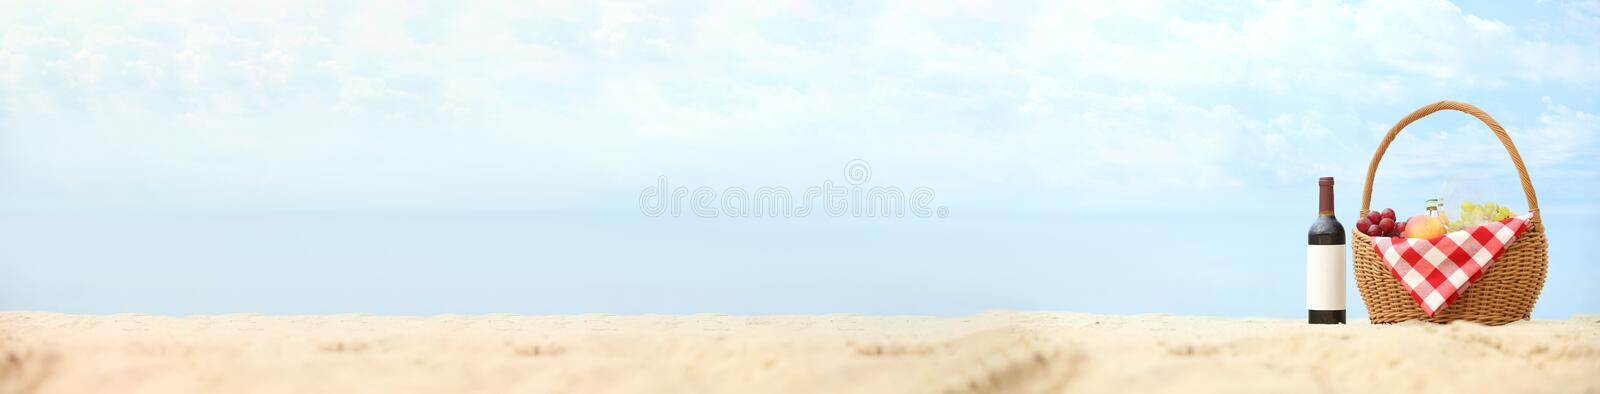 Wicker basket with food and wine on sand near sea. Beach picnic. Wicker basket with food and wine on sand near sea, space for text. Beach picnic royalty free stock images